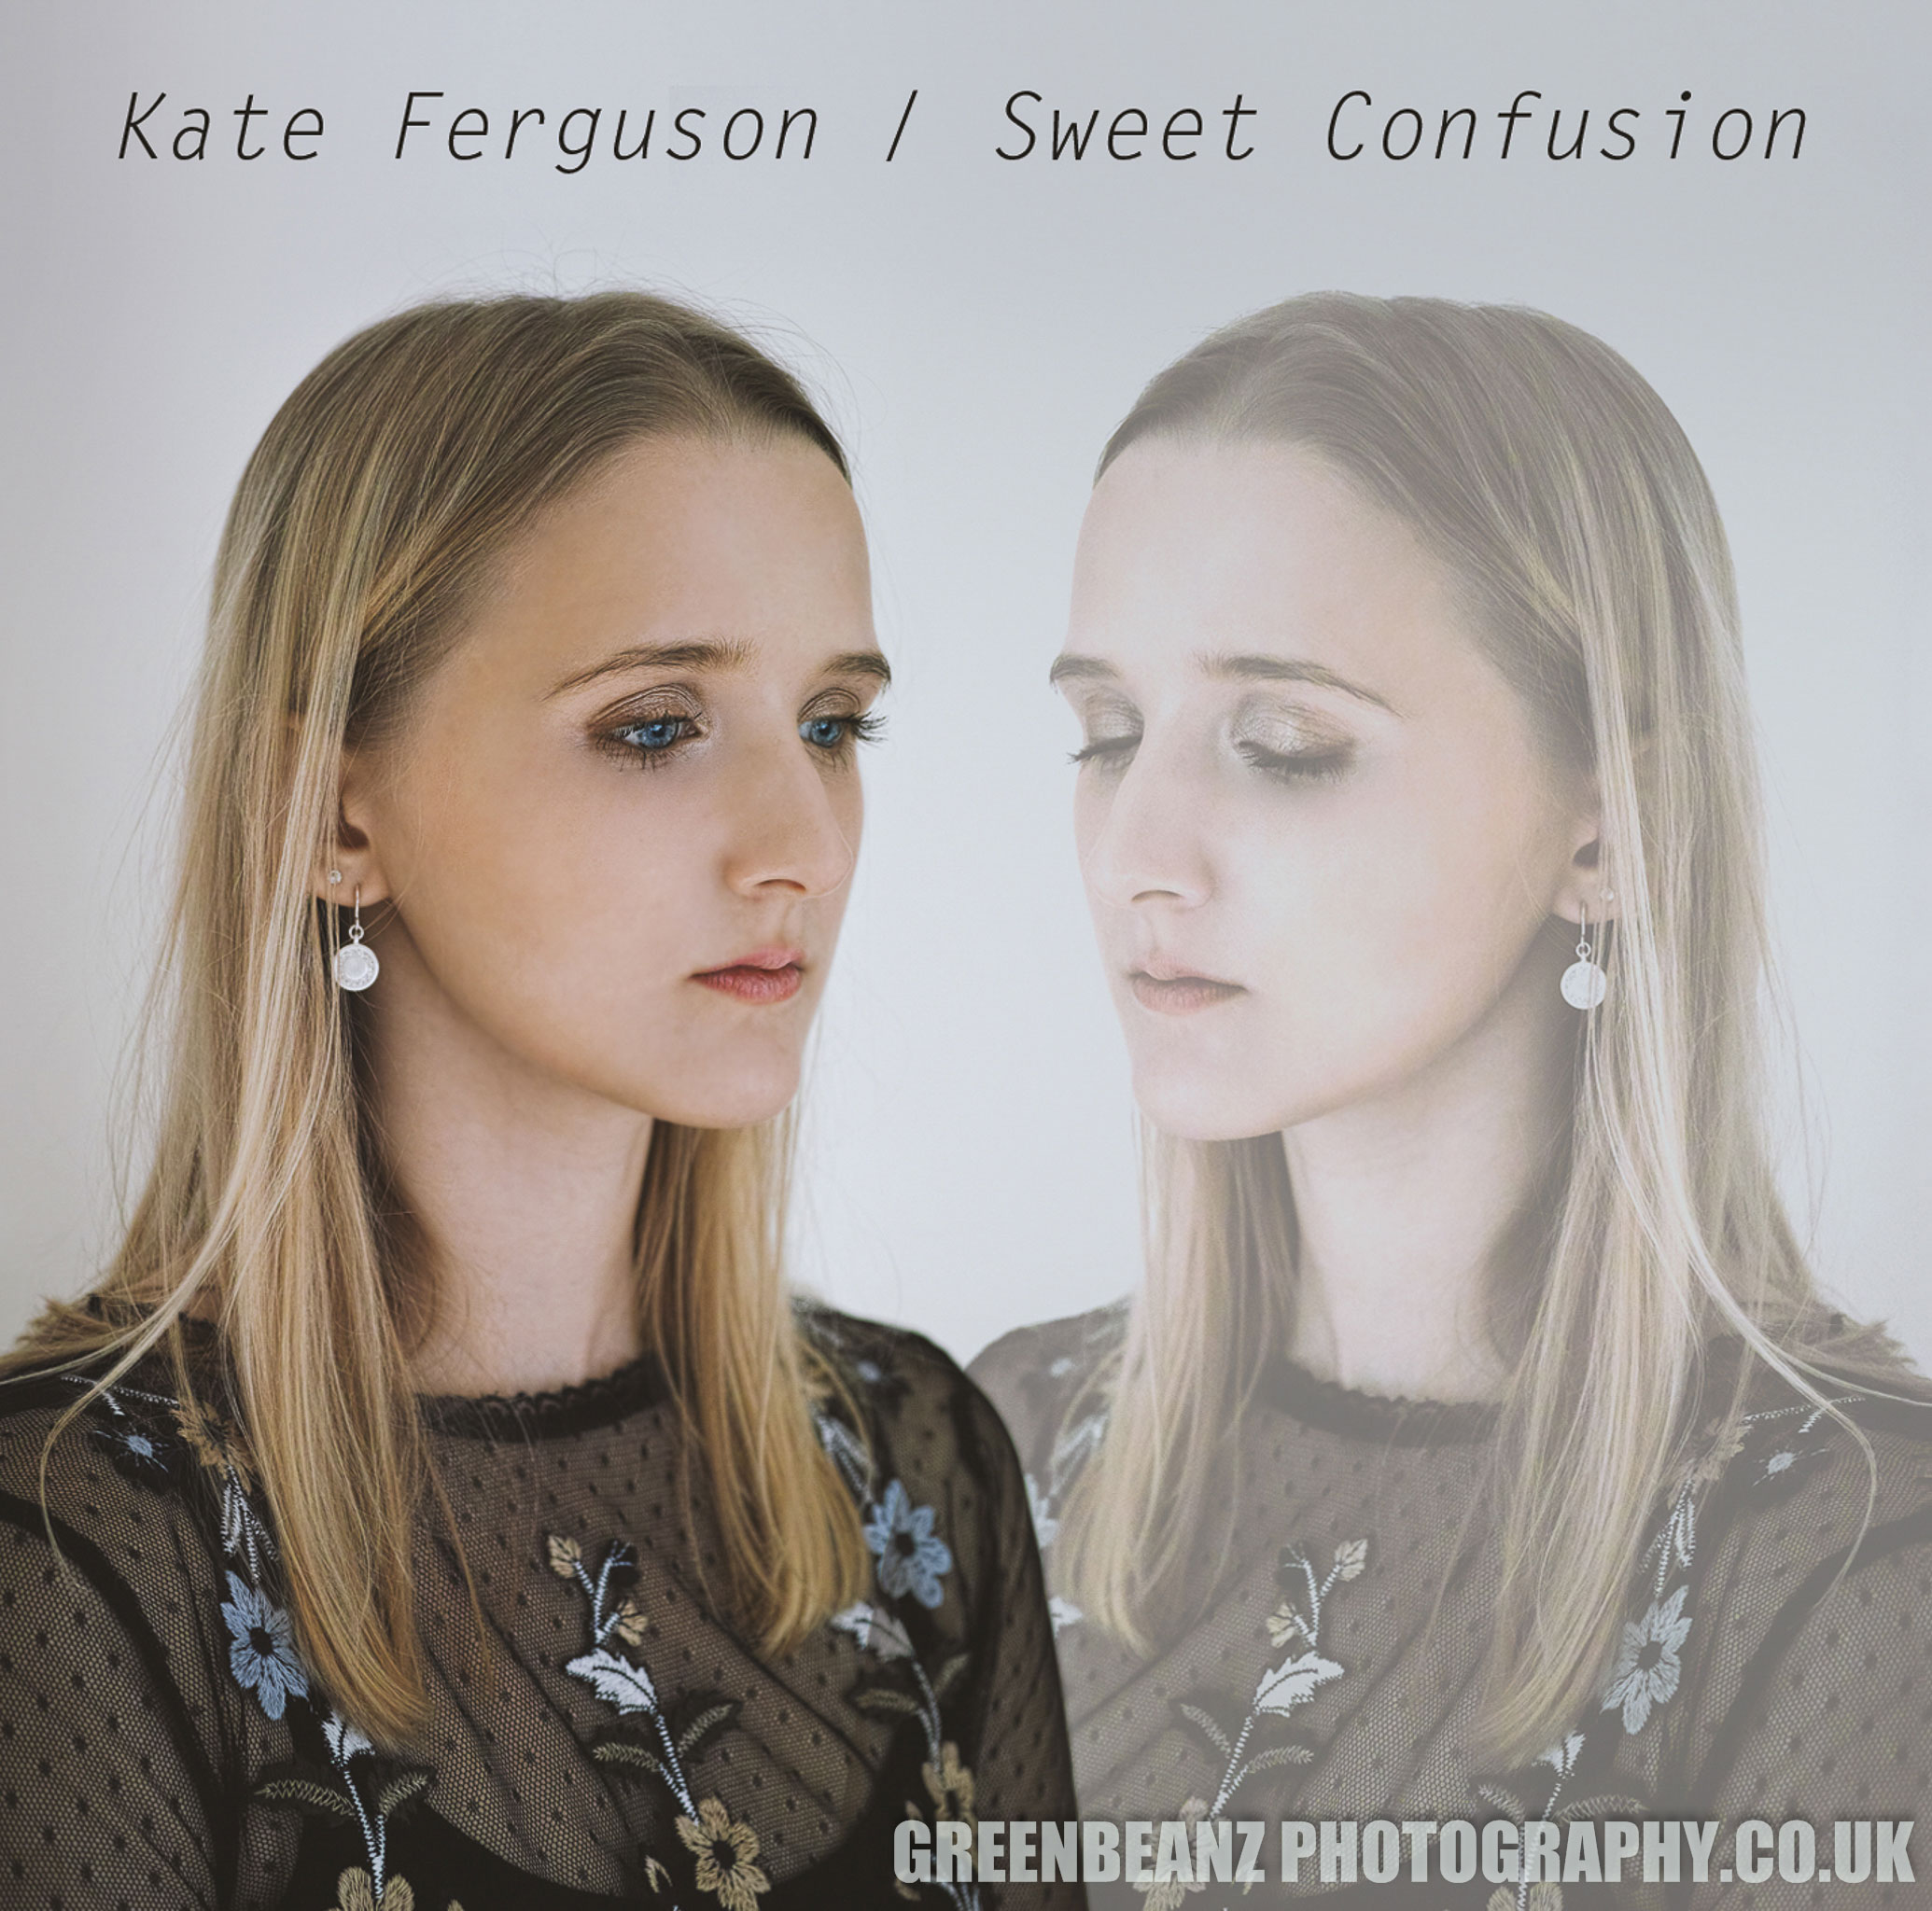 Kate Ferguson 'Sweet Confusion' UK CD artwork production in Plymouth